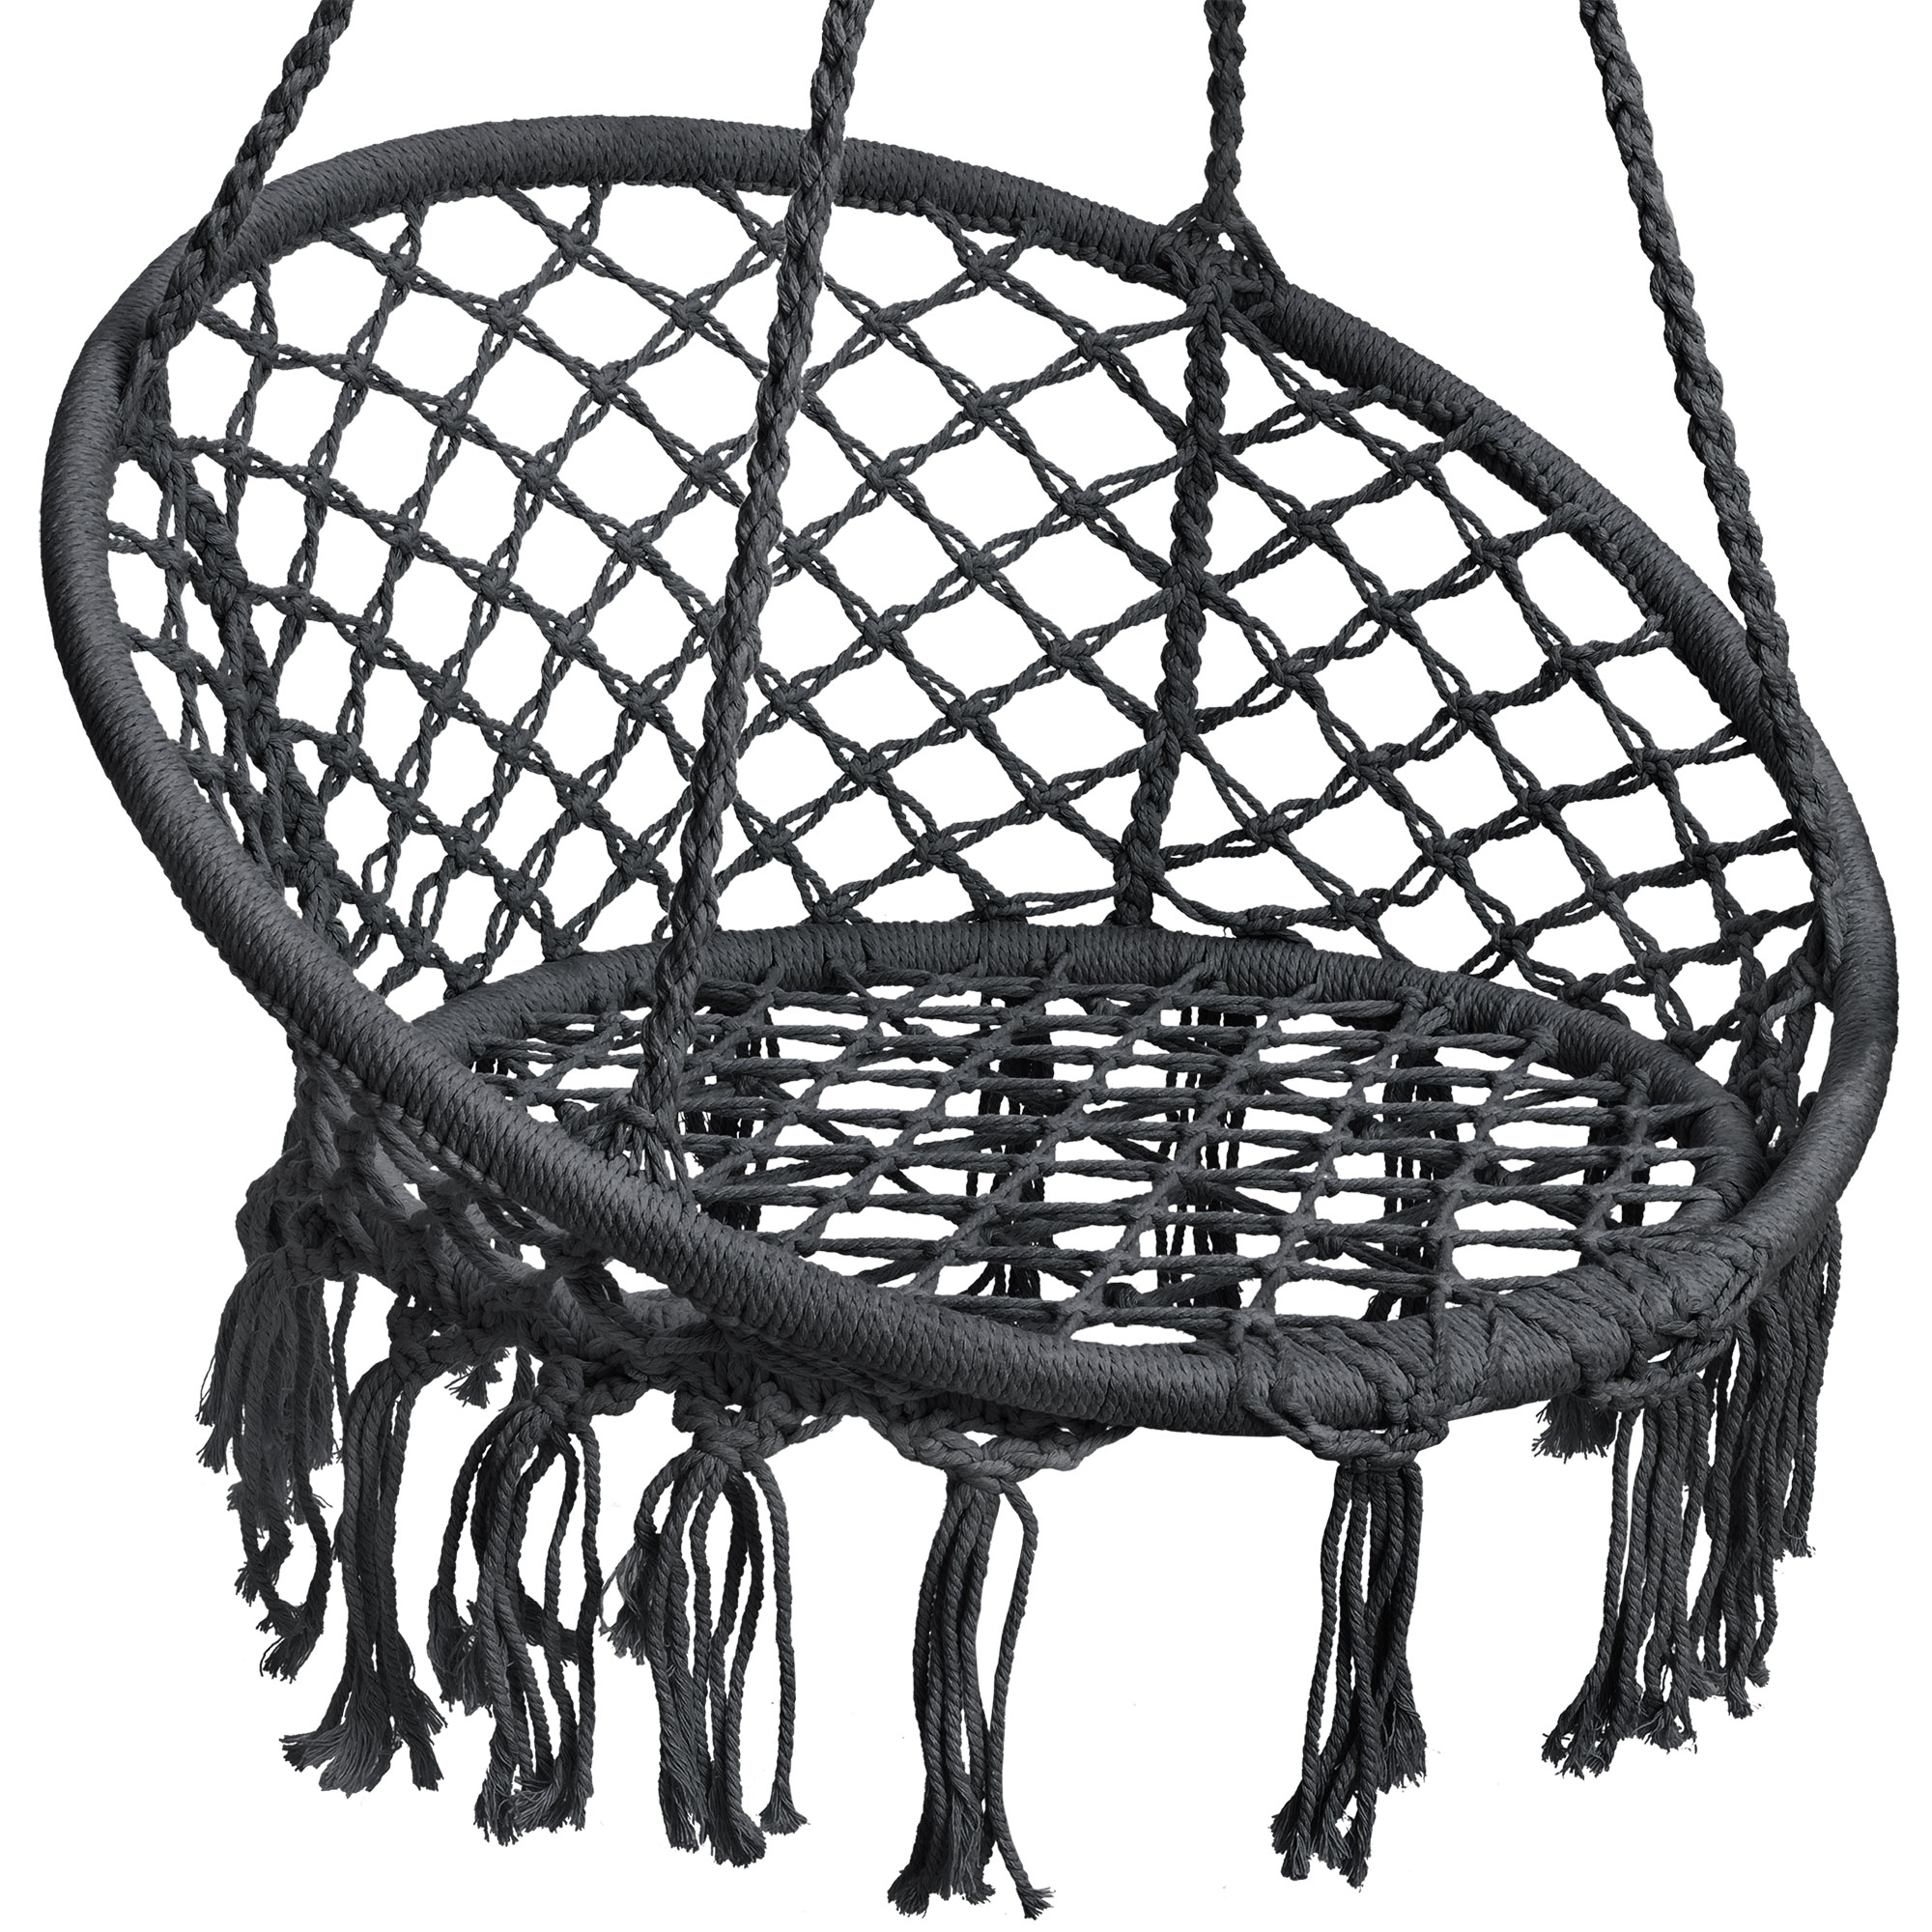 BCP-Handwoven-Cotton-Macrame-Hammock-Hanging-Chair-Swing-w-Backrest thumbnail 18